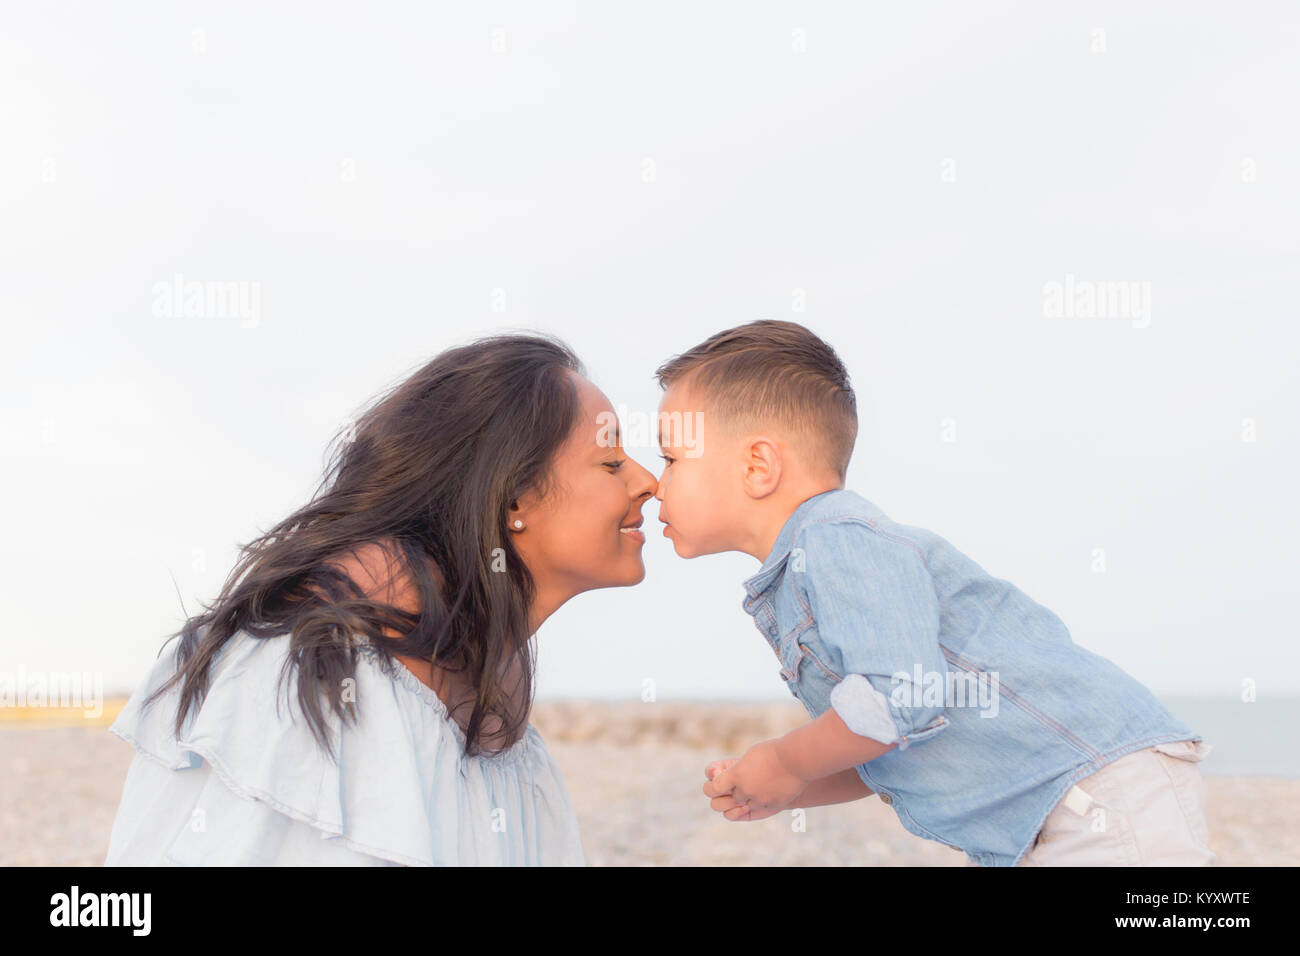 Mother rubbing noses with son against clear sky - Stock Image